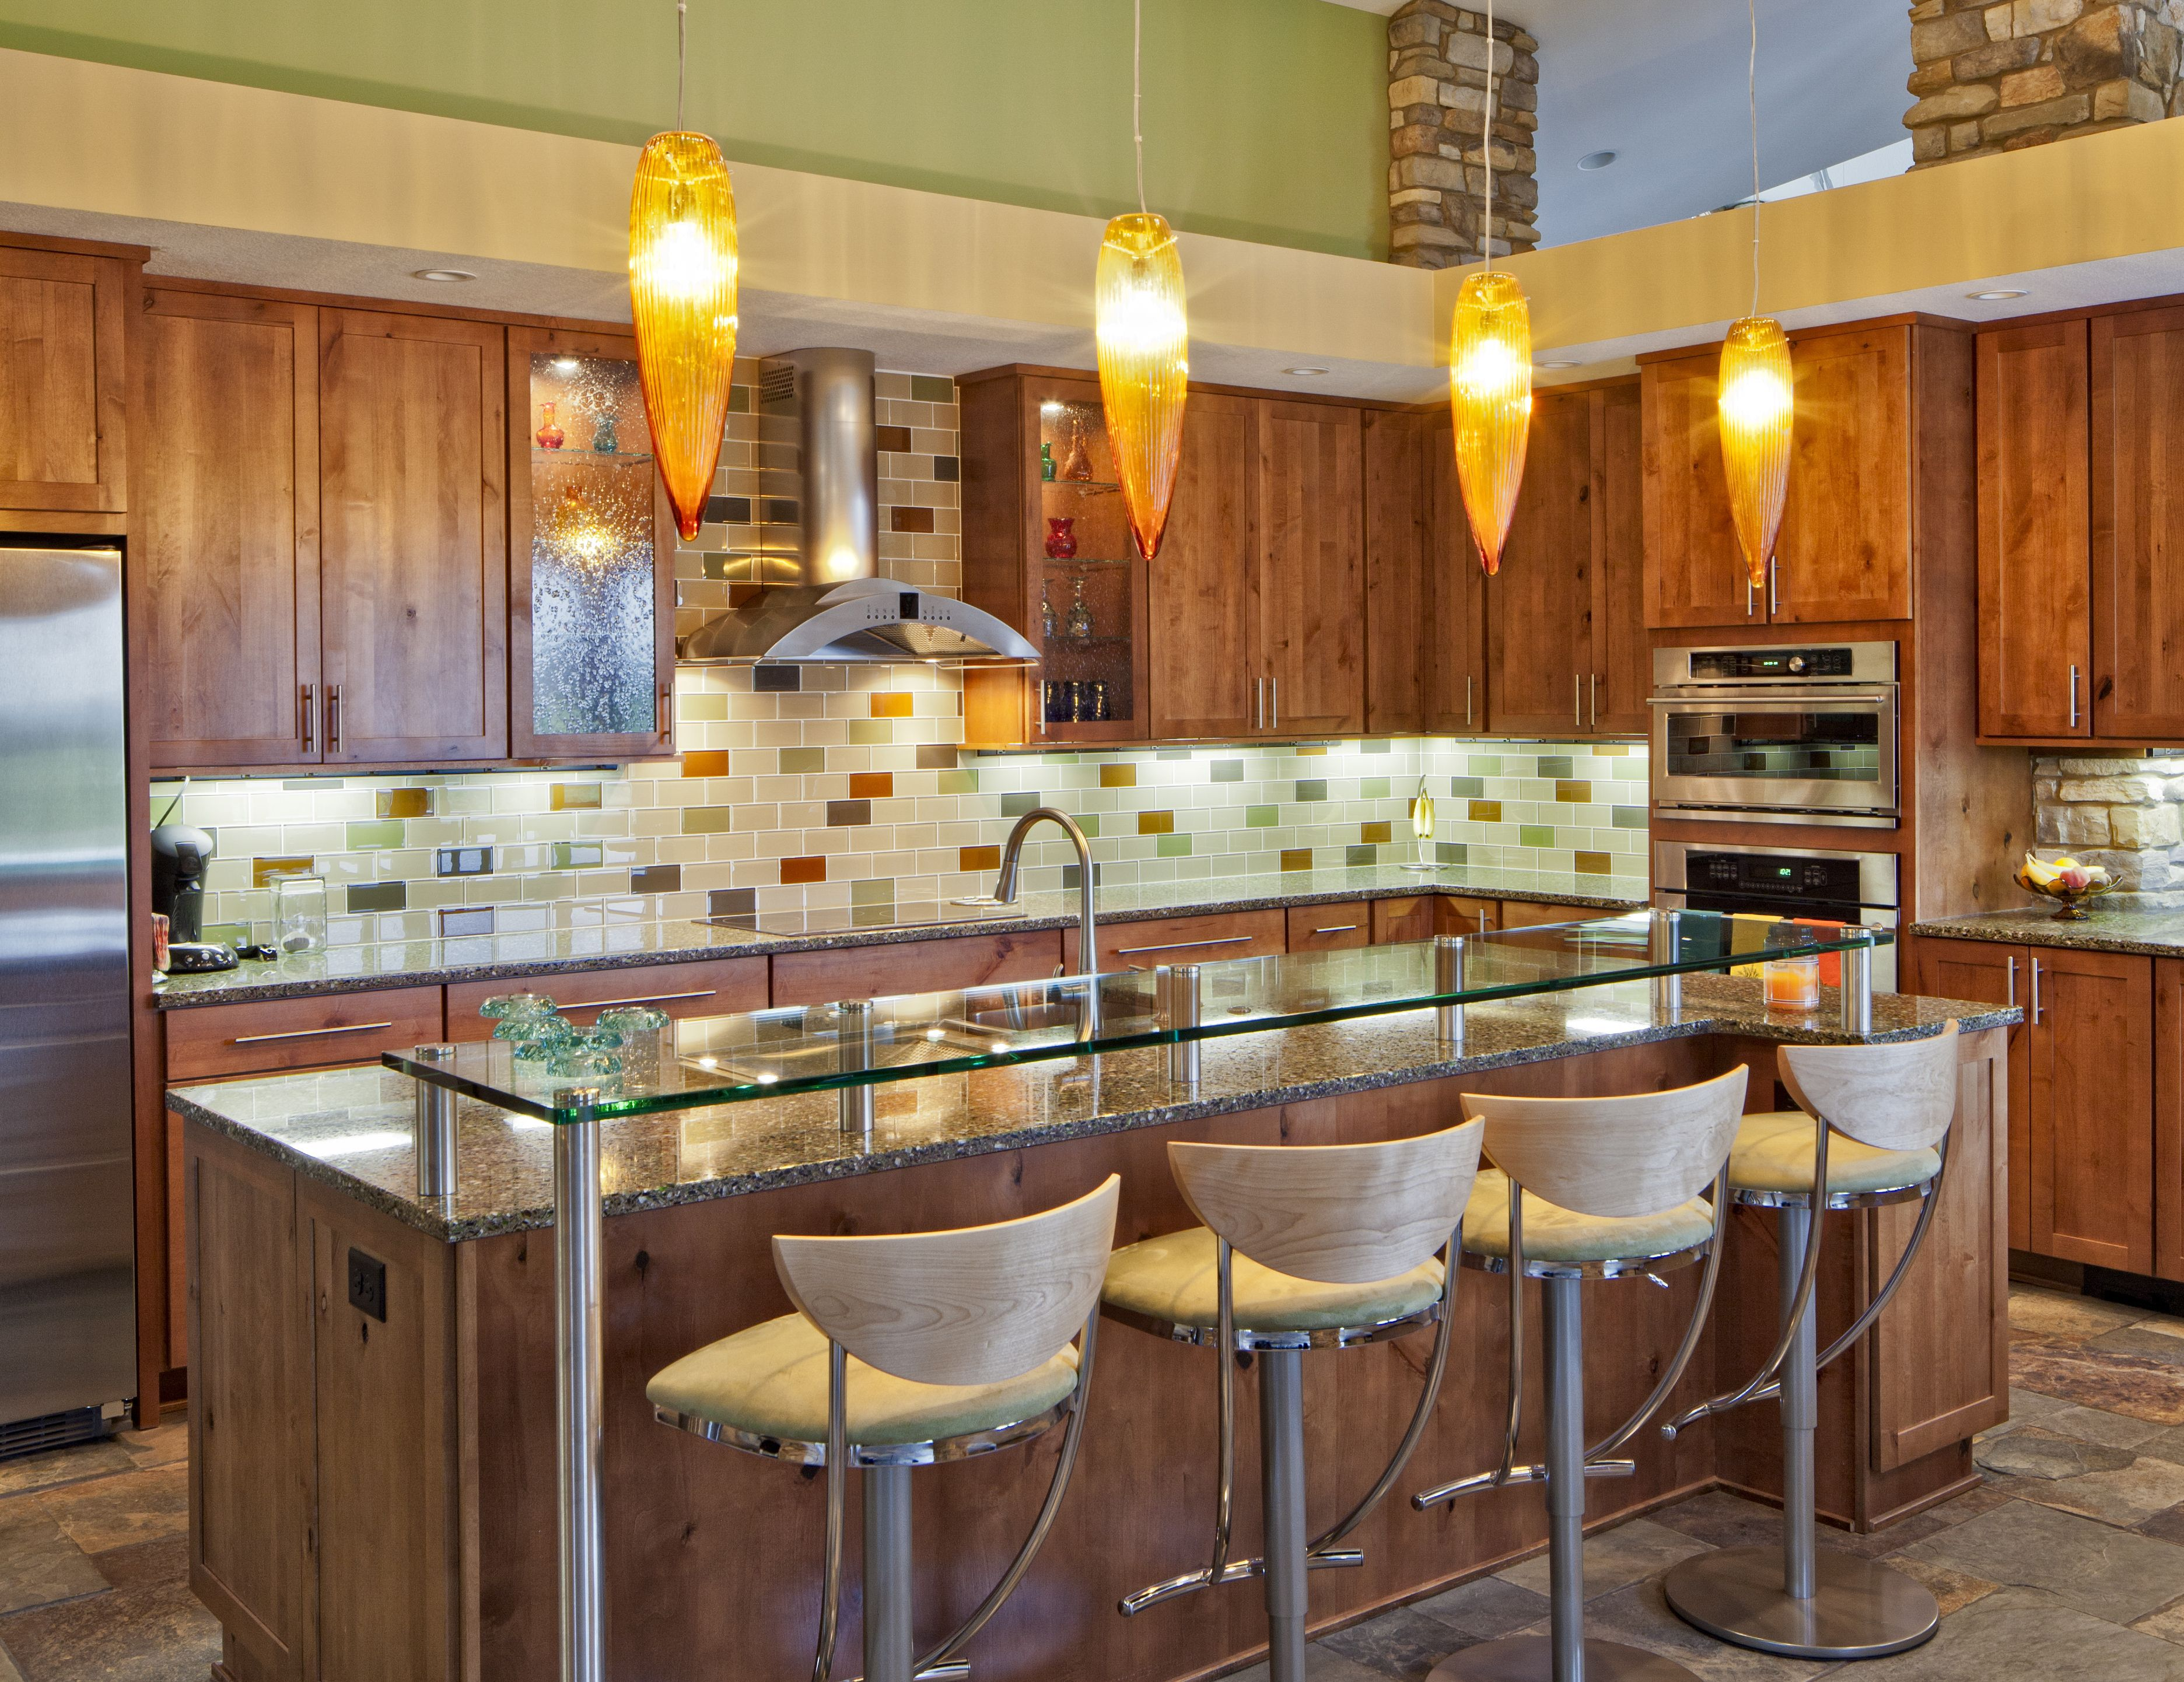 Top Home Remodels That Pay Off and Help You Sell Your Home